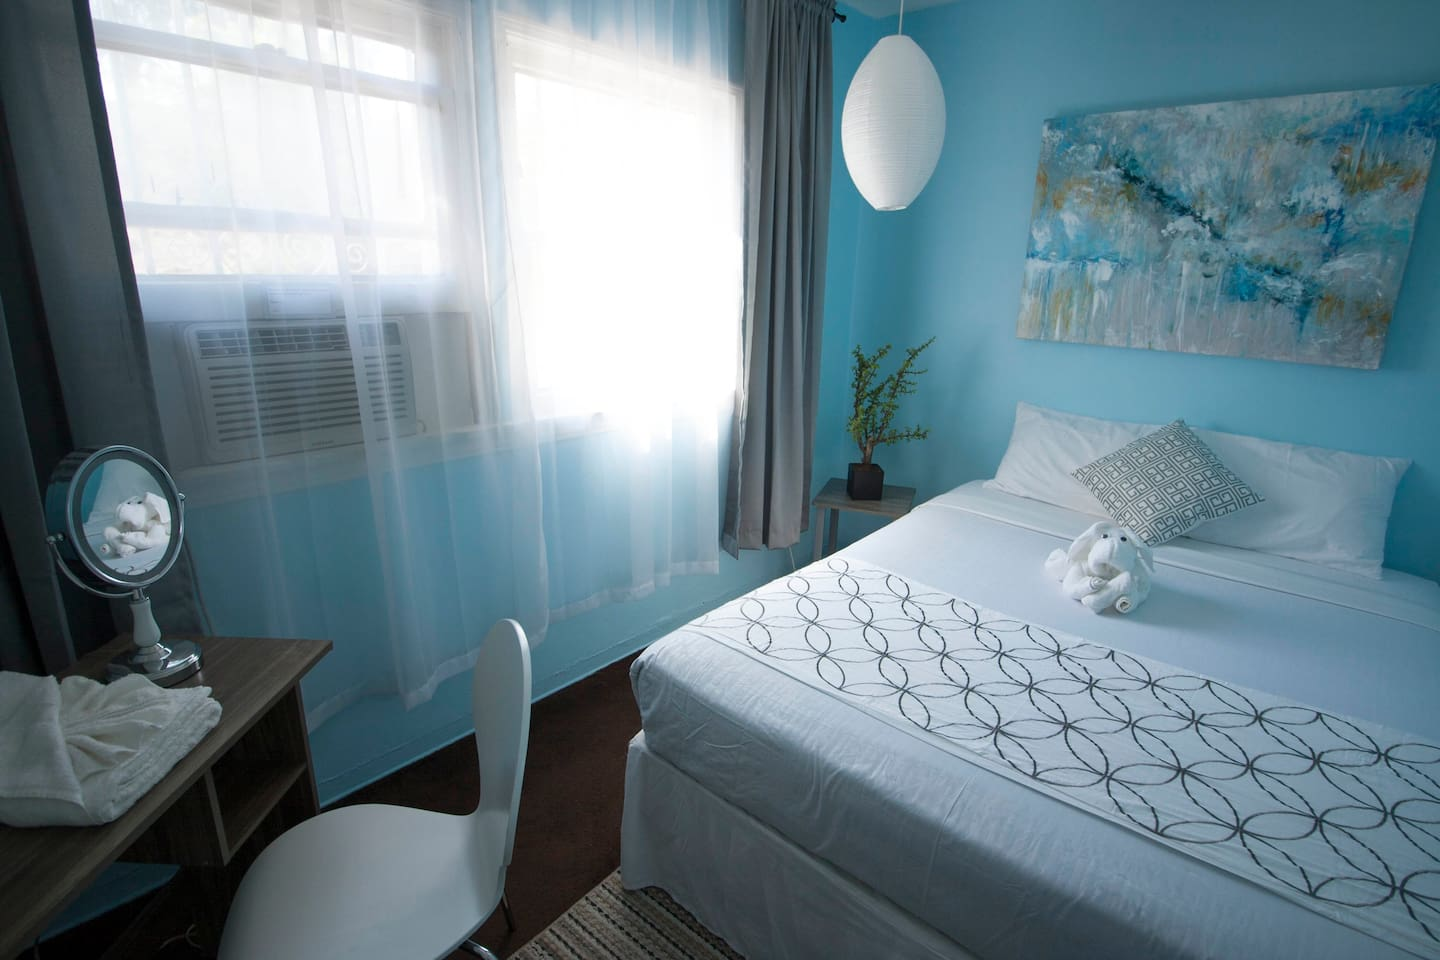 Comfortable private room with queen size bed, AC, and locking door.